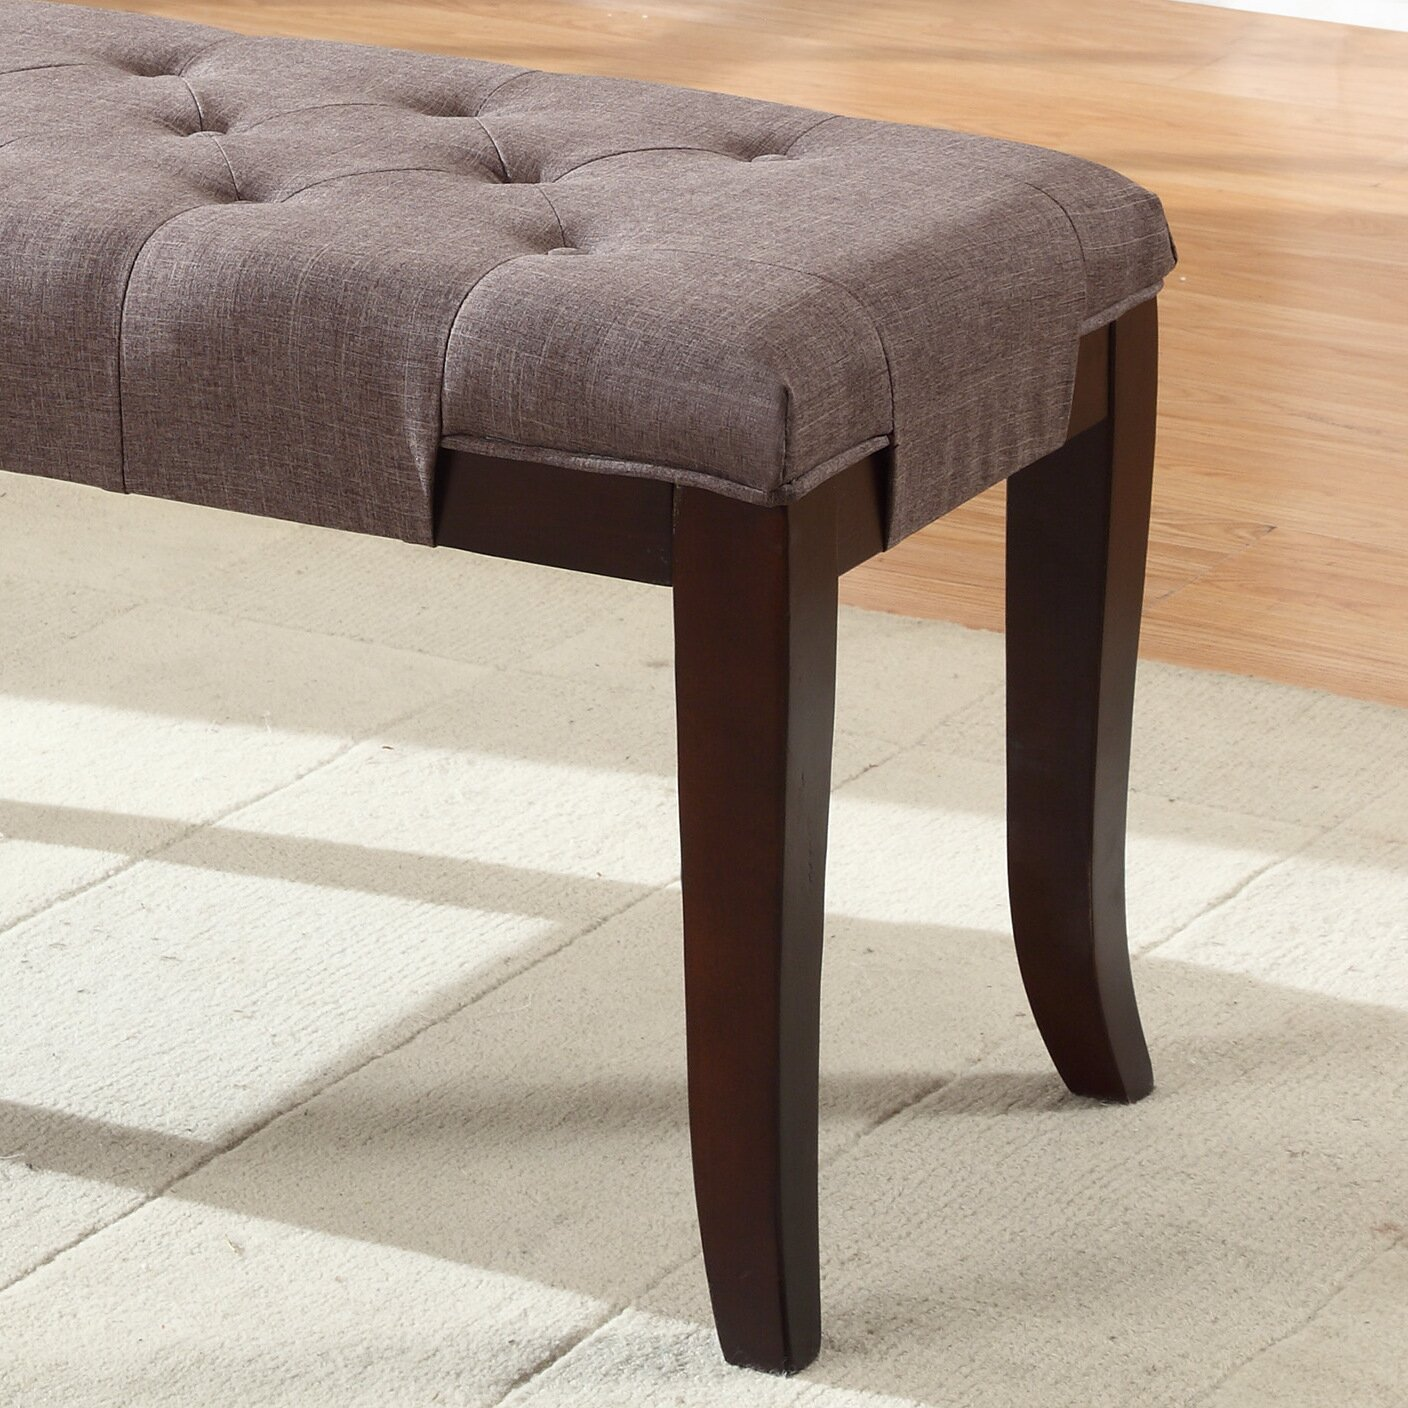 Roundhill Furniture Linion Bench & Reviews